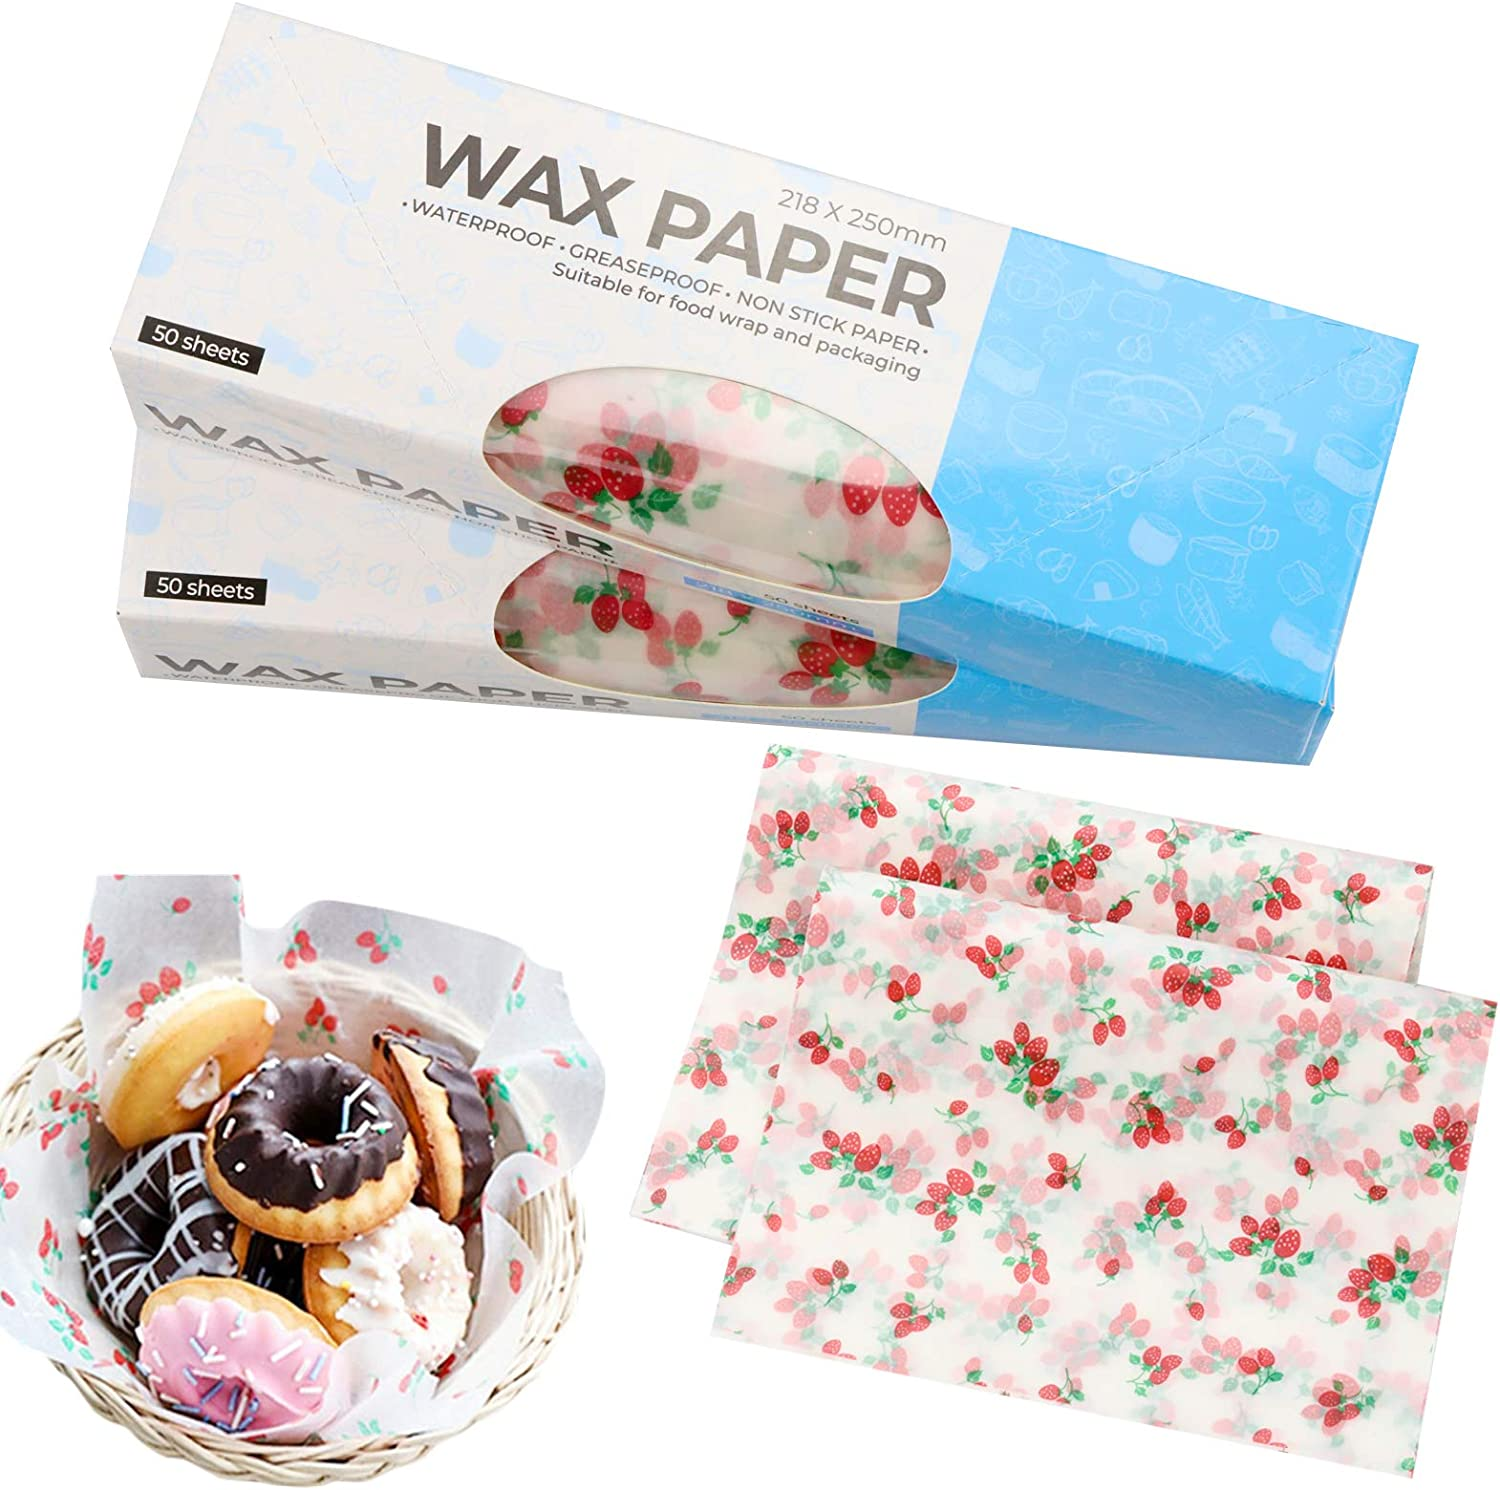 Zezzxu Wax Paper Food Picnic Paper, 100pcs Grease Proof Paper Waterproof Dry Hamburger Paper Liners Wrapping Tissue for Plastic Food Basket (Strawberry pattern)